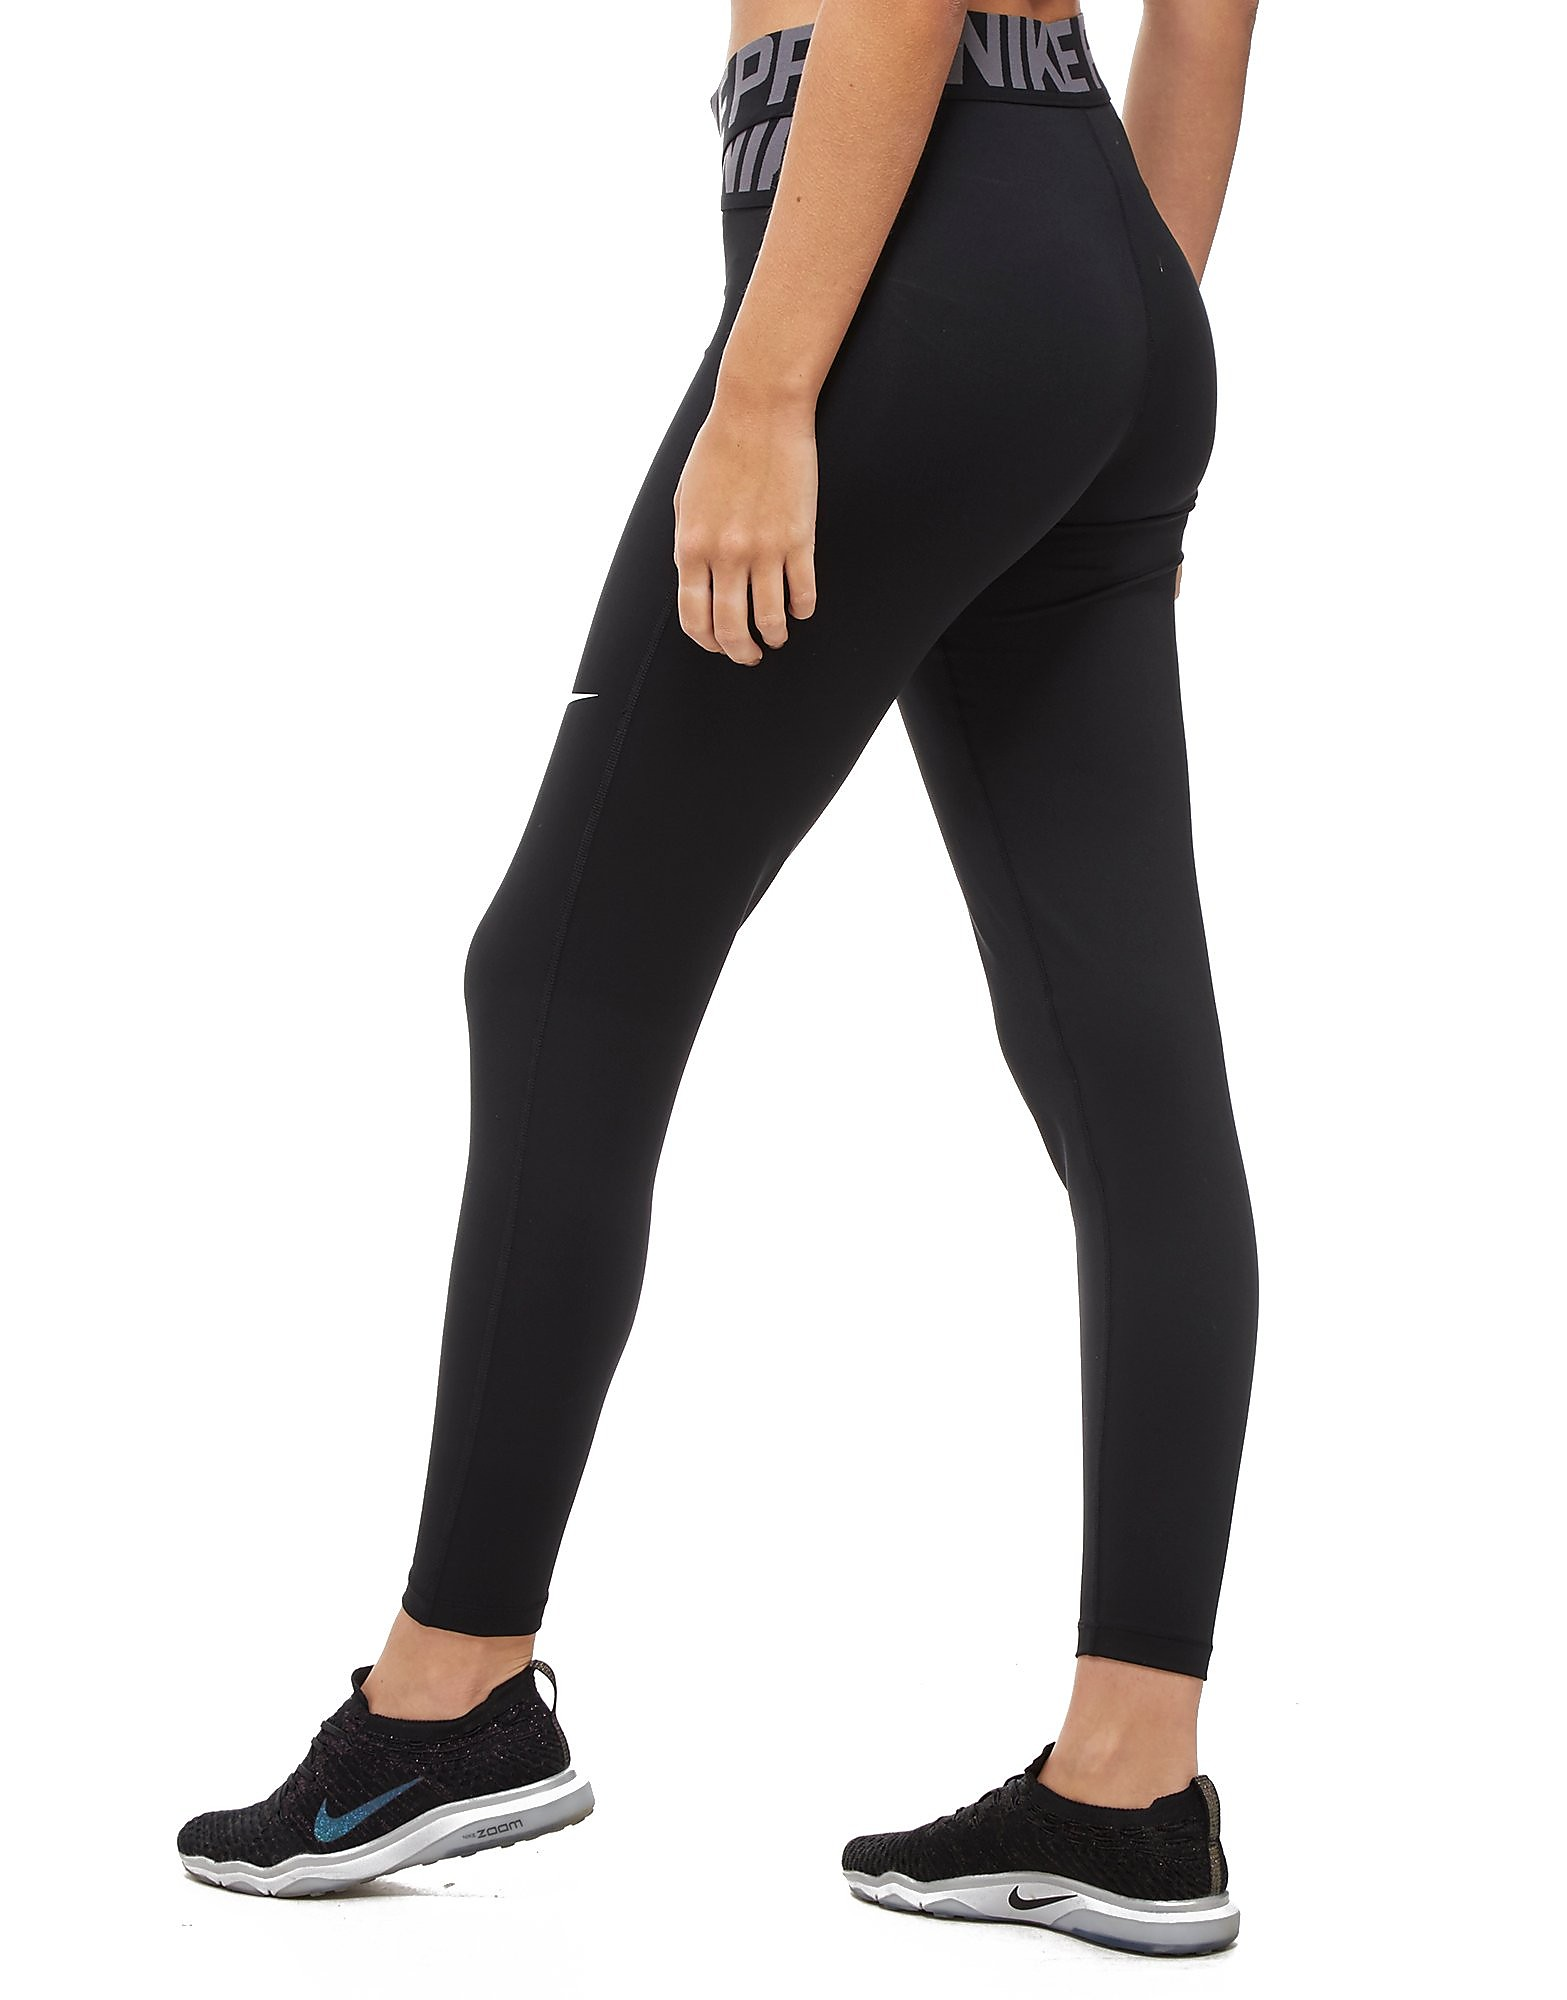 Nike Pro Cross Over Training Tights